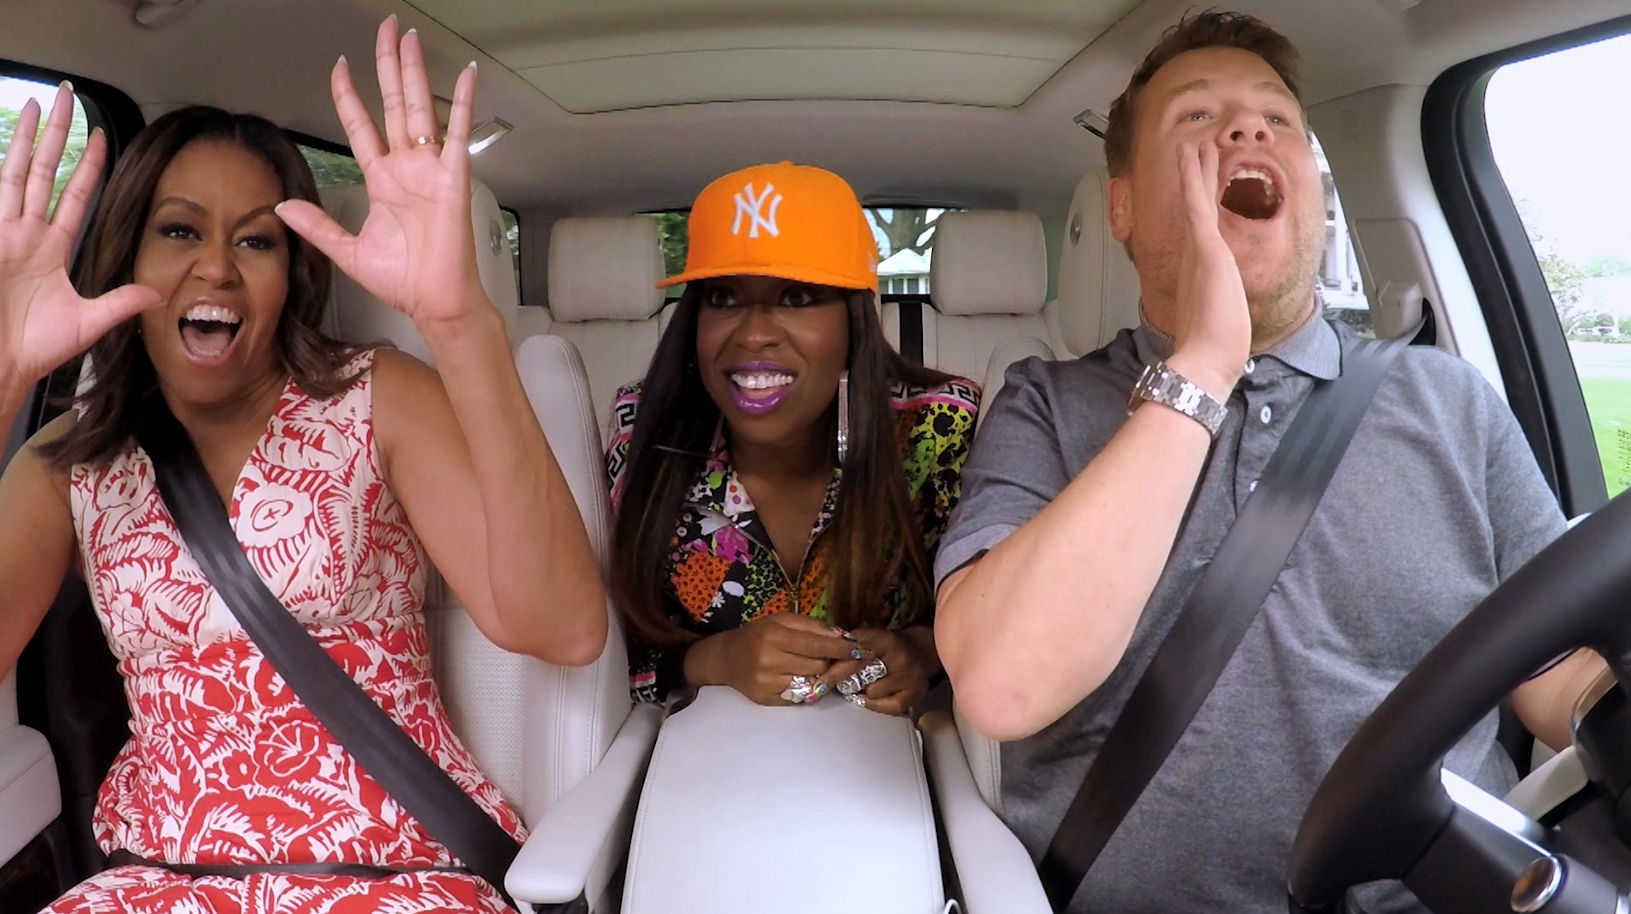 The First Lady Michelle Obama and Missy Elliott join James Corden for Carpool Karaoke on  The Late Late Show with James Corden,  Wednesday, July 20th 2016.